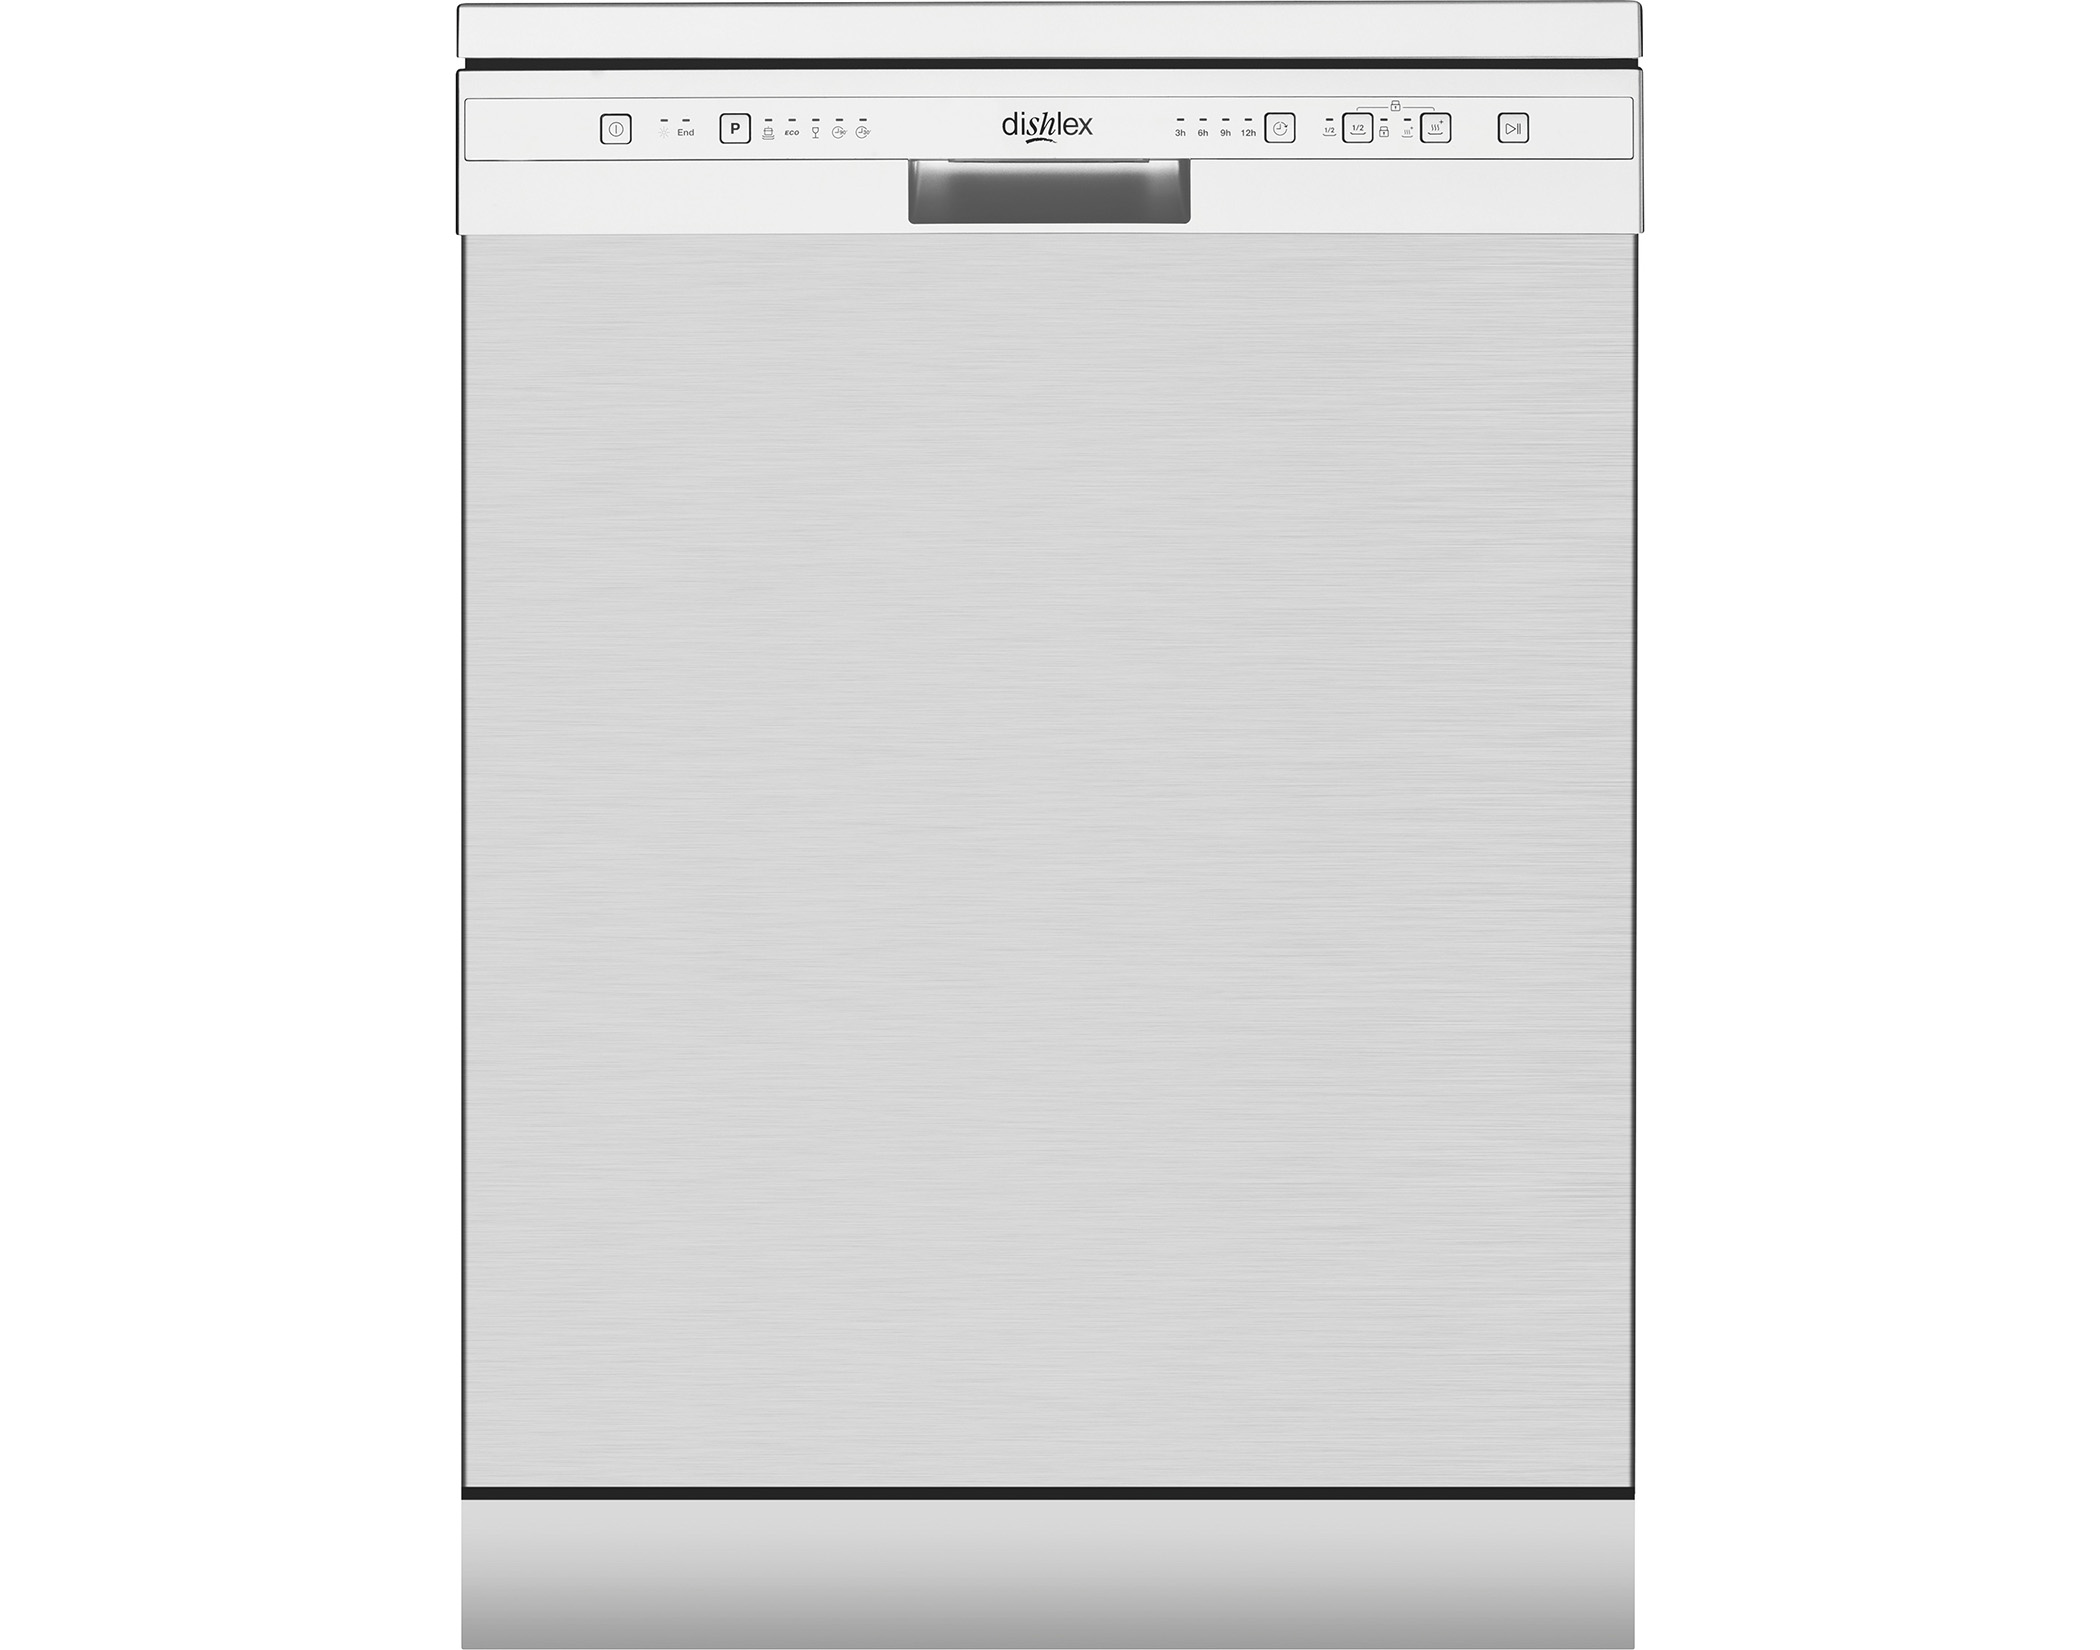 Dishlex DSF6104XA 13 Place Setting Freestanding Dishwasher in Stainless Steel